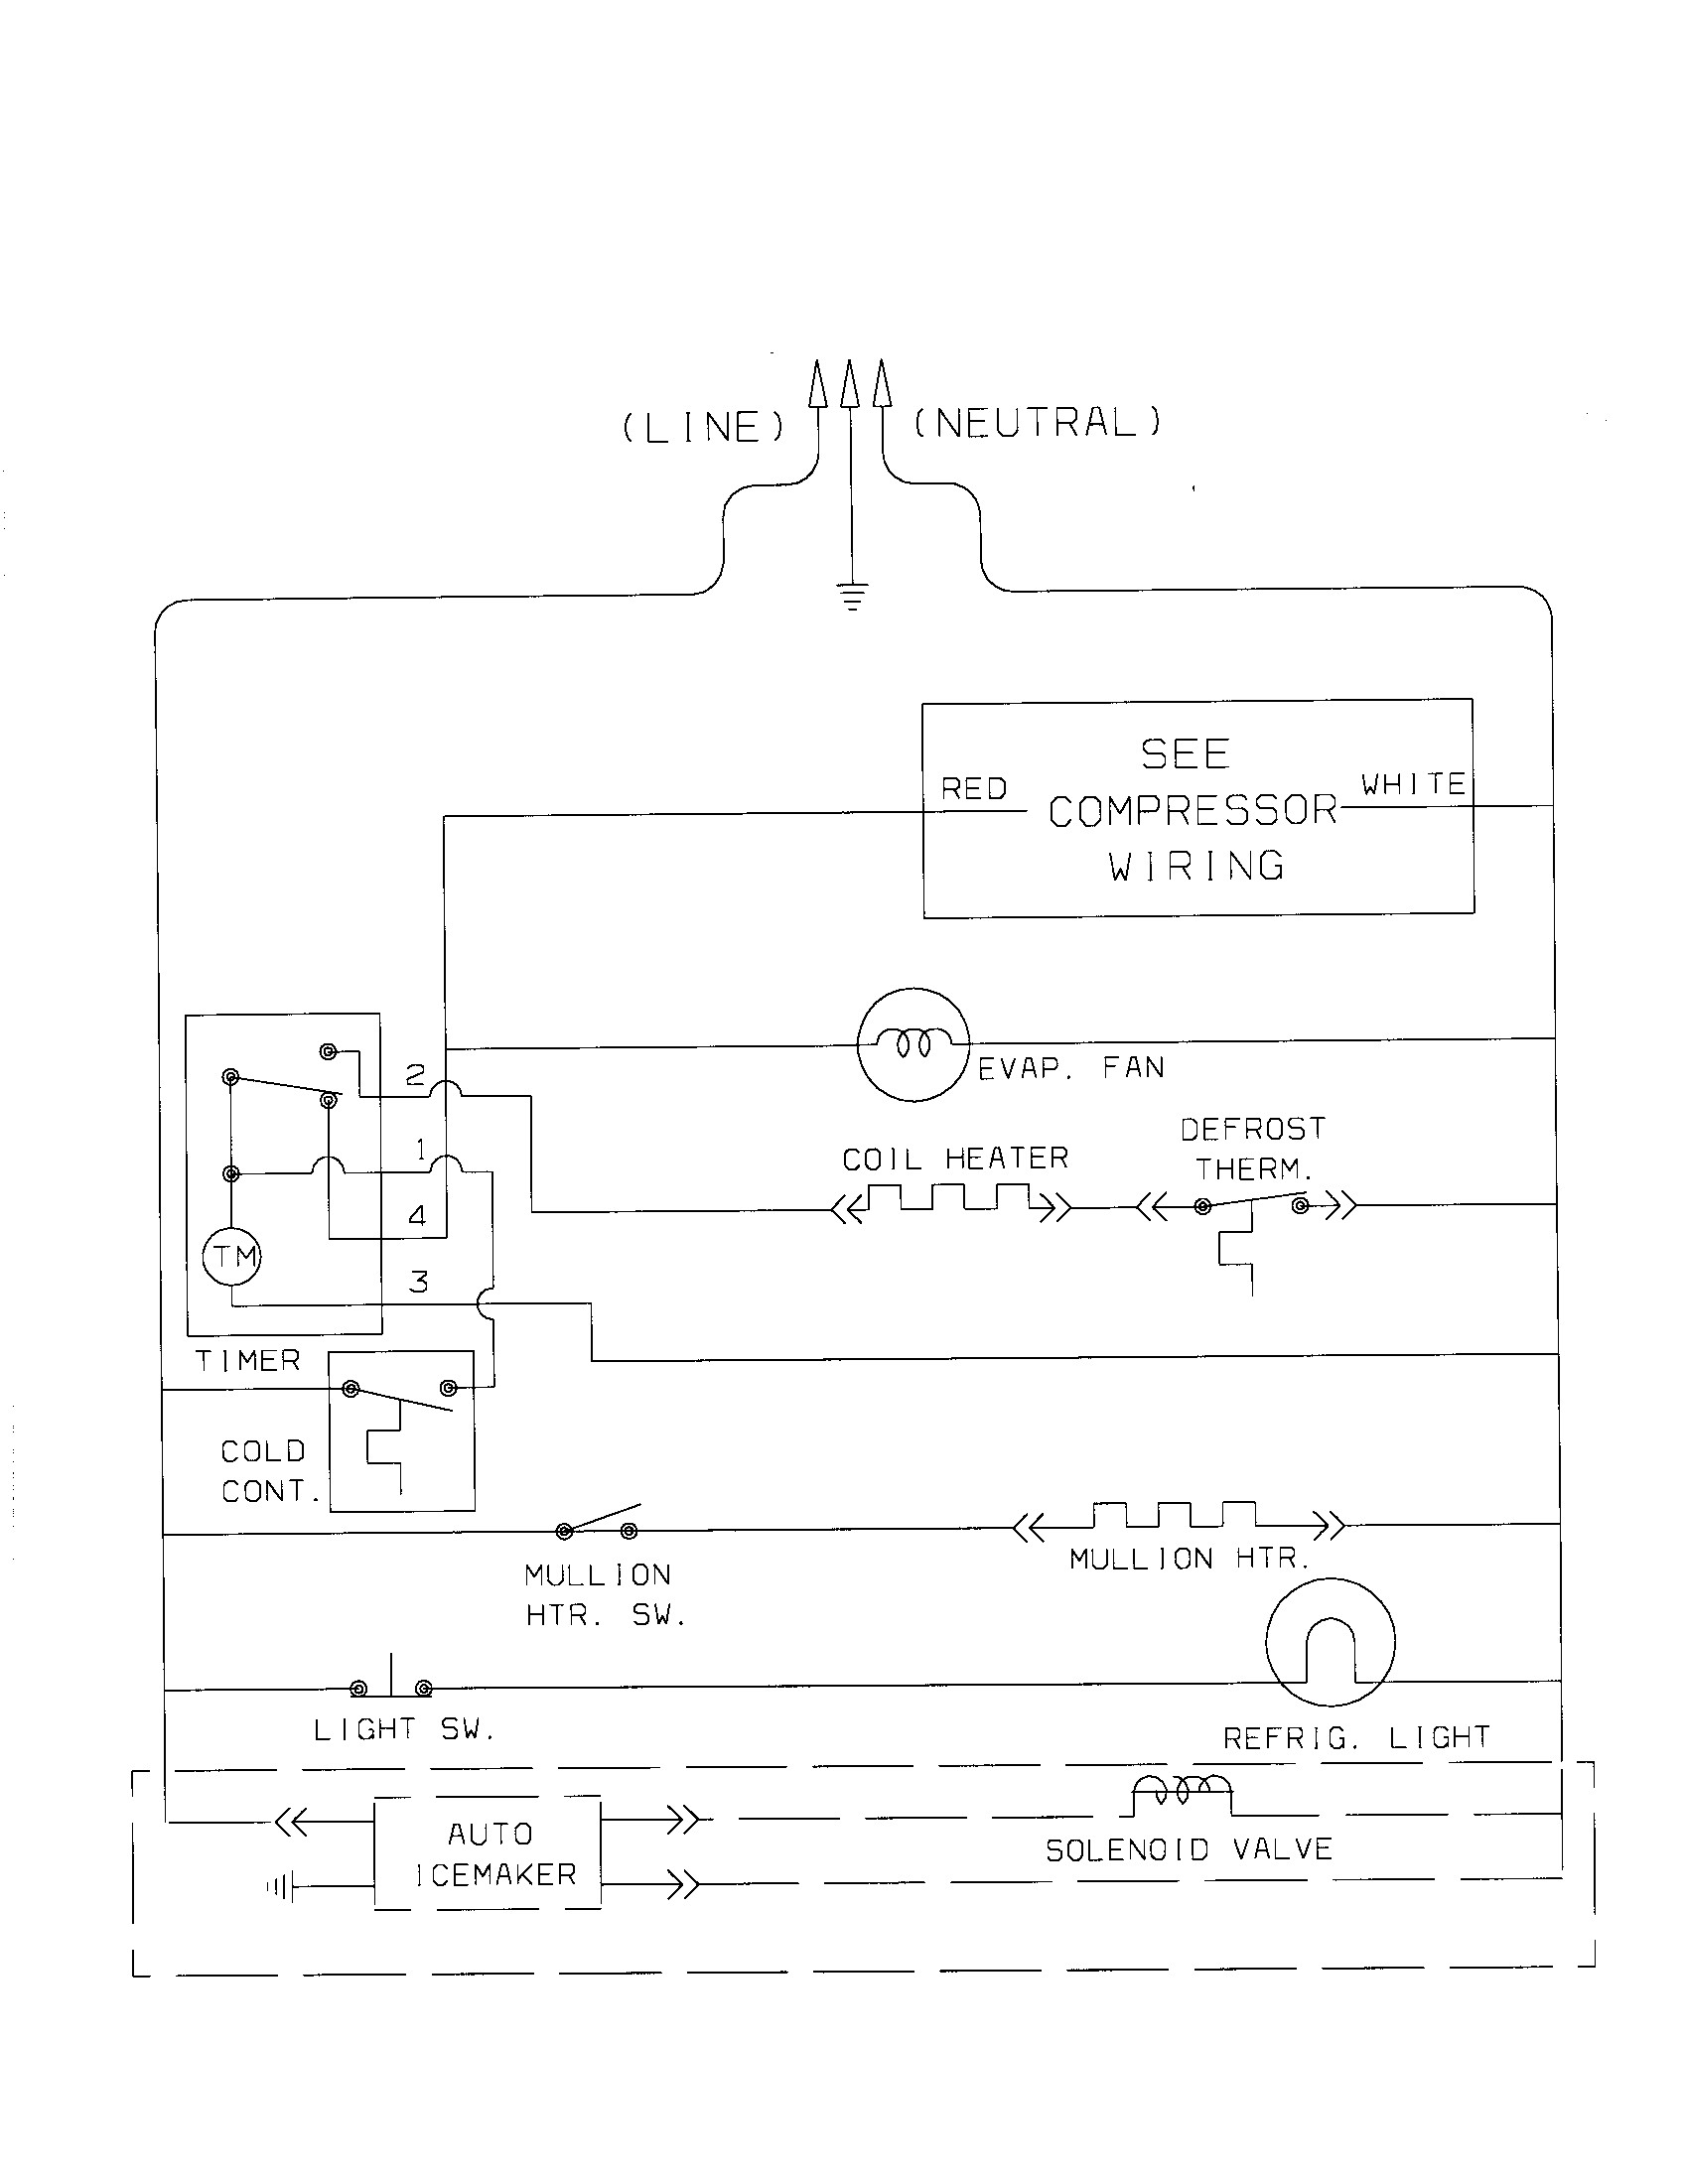 Traulsen Wiring Diagrams | Wiring Schematic Diagram on sears wiring diagrams, ge wiring diagrams, imperial wiring diagrams, bohn freezer wiring diagrams, freezer defrost timer wiring diagrams, hatco wiring diagrams, westinghouse wiring diagrams, champion wiring diagrams, norlake wiring diagrams, beverage air wiring diagrams, carrier wiring diagrams, bohn refrigeration wiring diagrams, apw wyott wiring diagrams, lg wiring diagrams, greenheck wiring diagrams, speed queen wiring diagrams, dacor wiring diagrams, lincoln wiring diagrams, viking wiring diagrams, merco wiring diagrams,